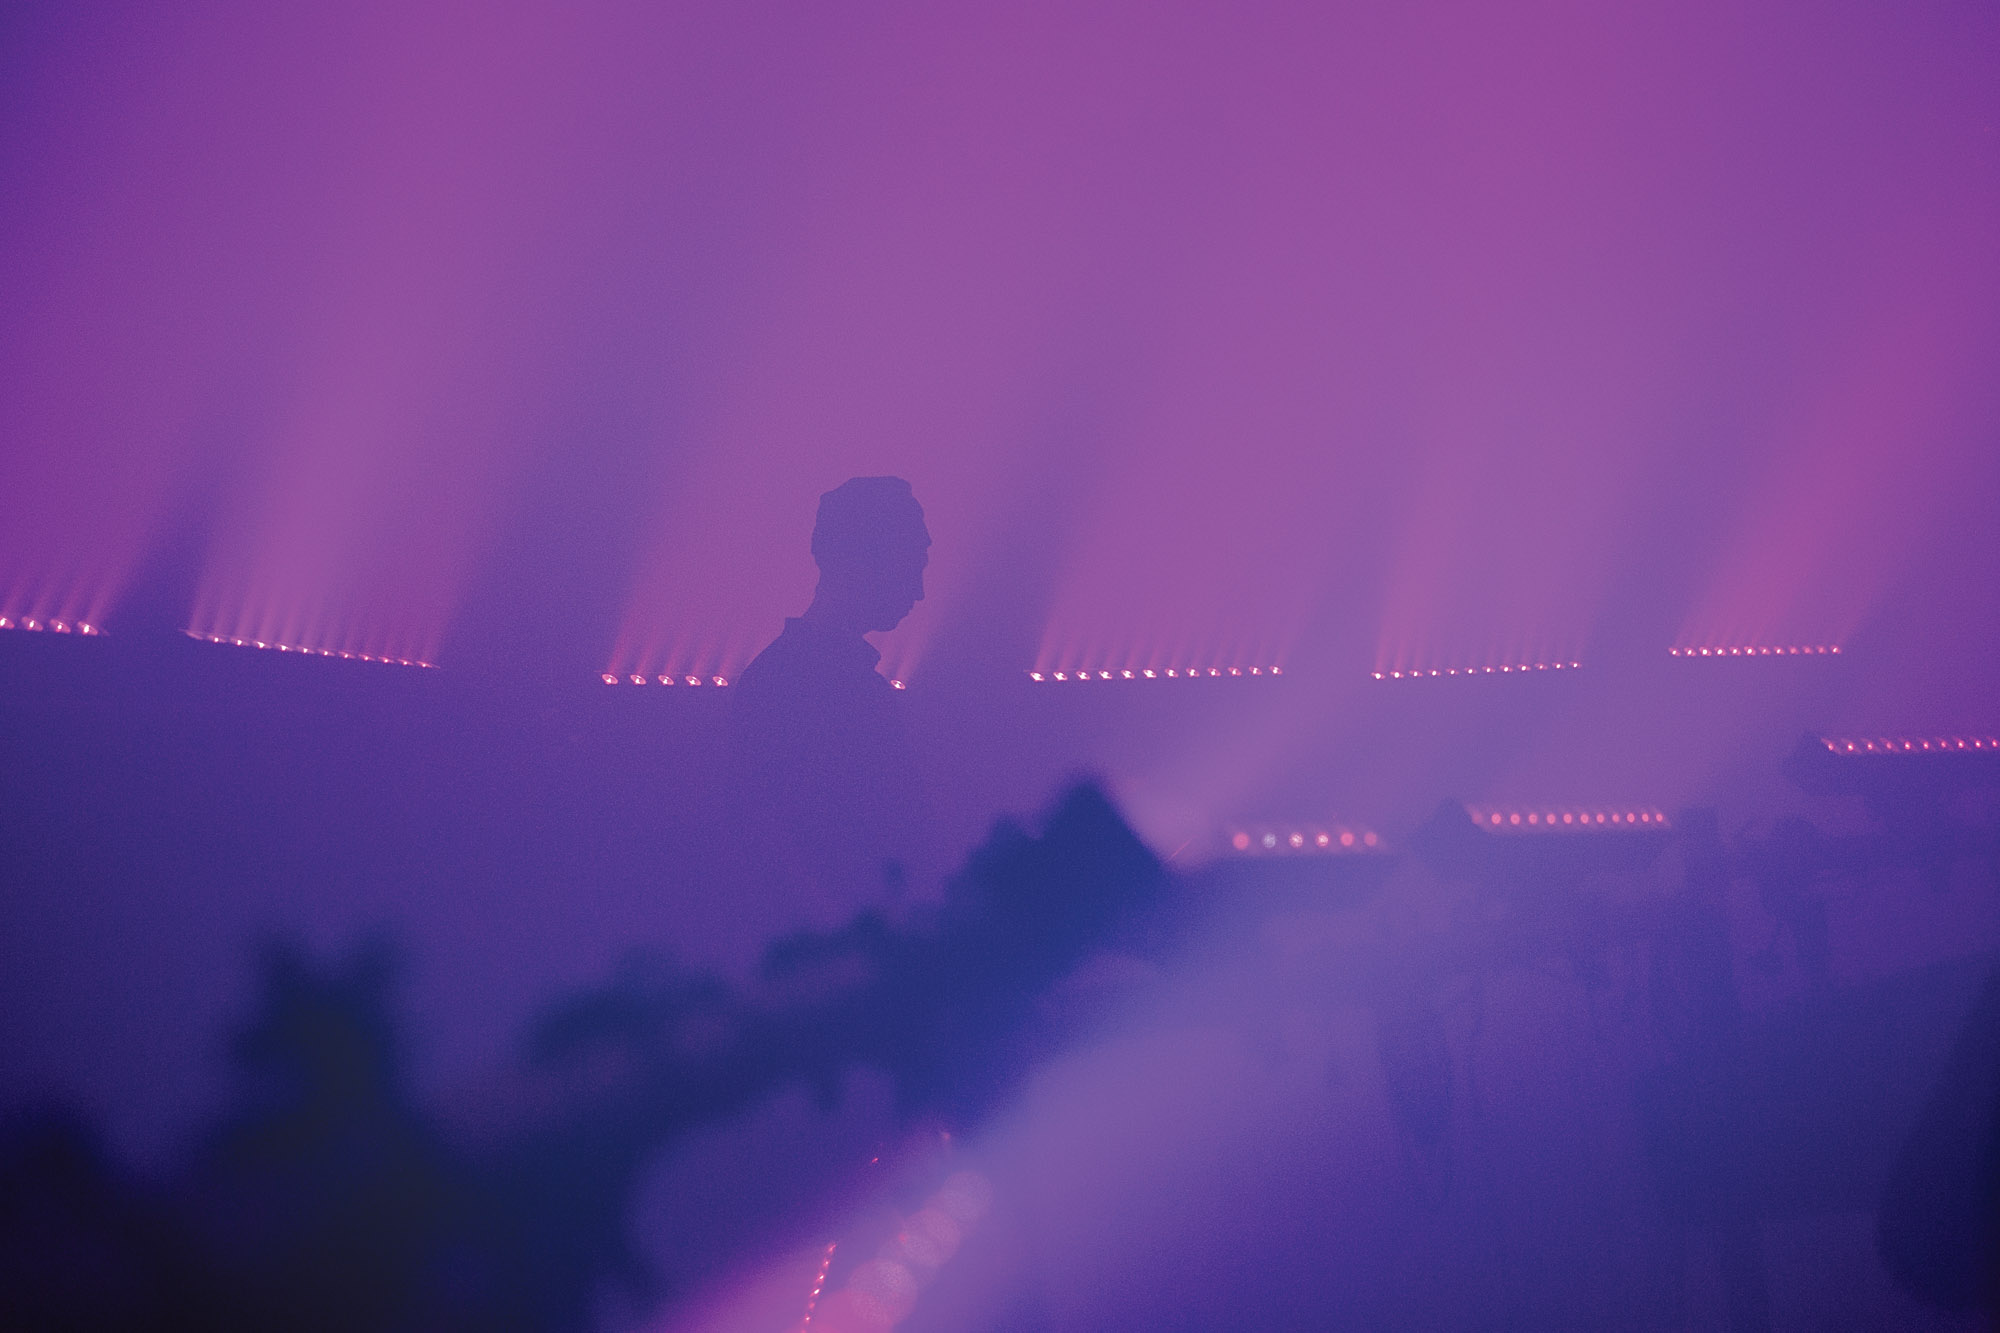 tim hecker's silouette in dense theatrical fog